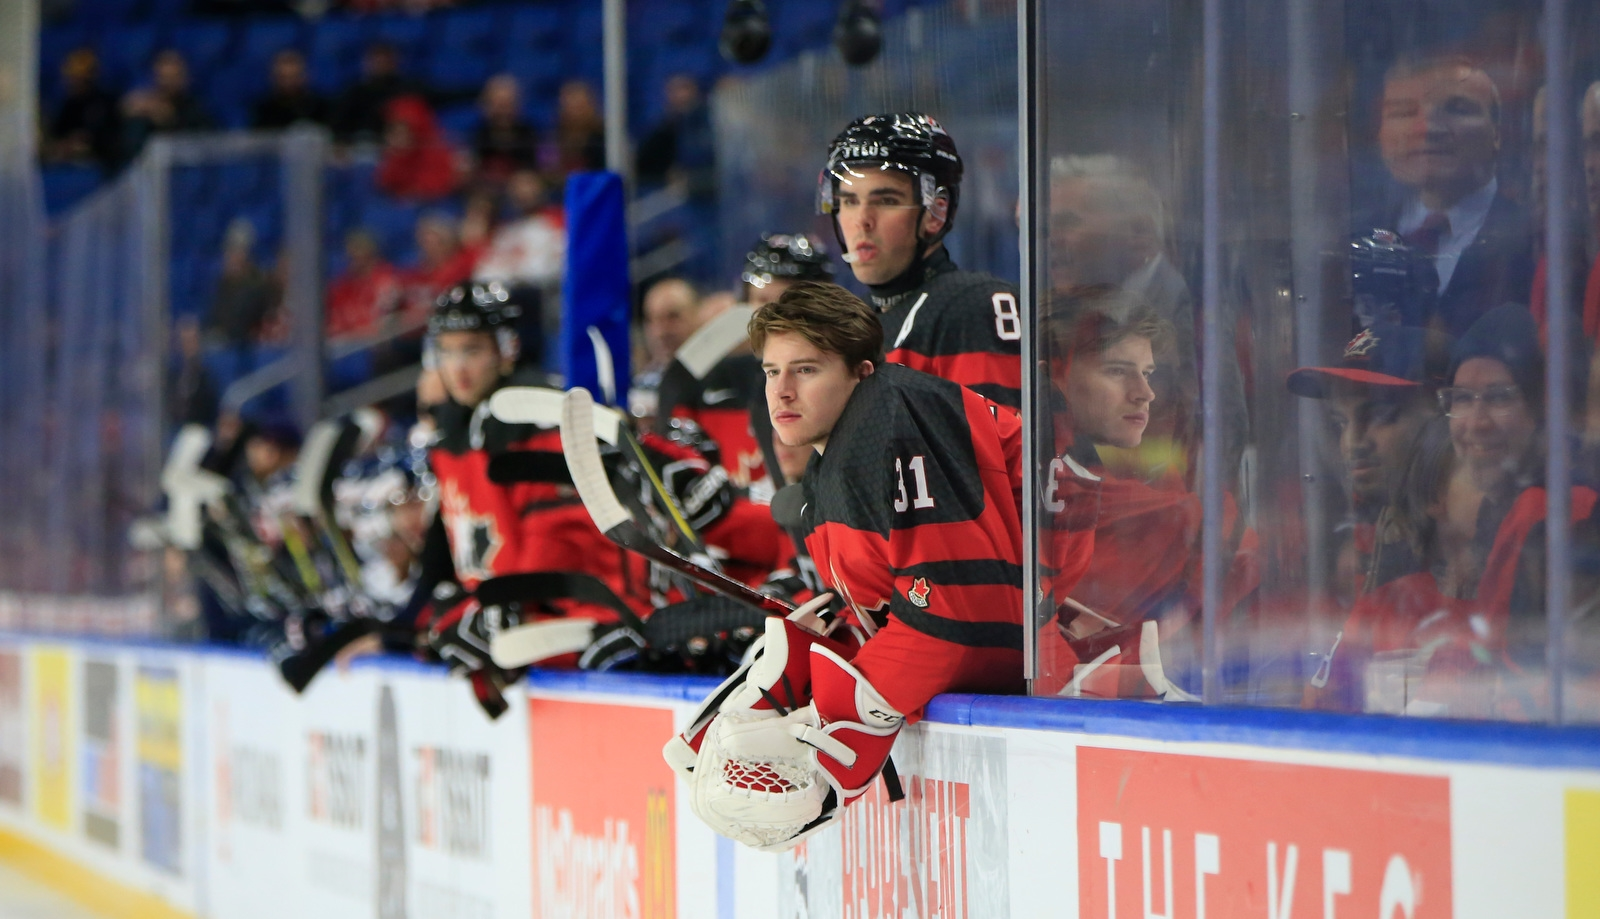 Team Canada goaltender Carter Hart watches from the bench against Slovakia.